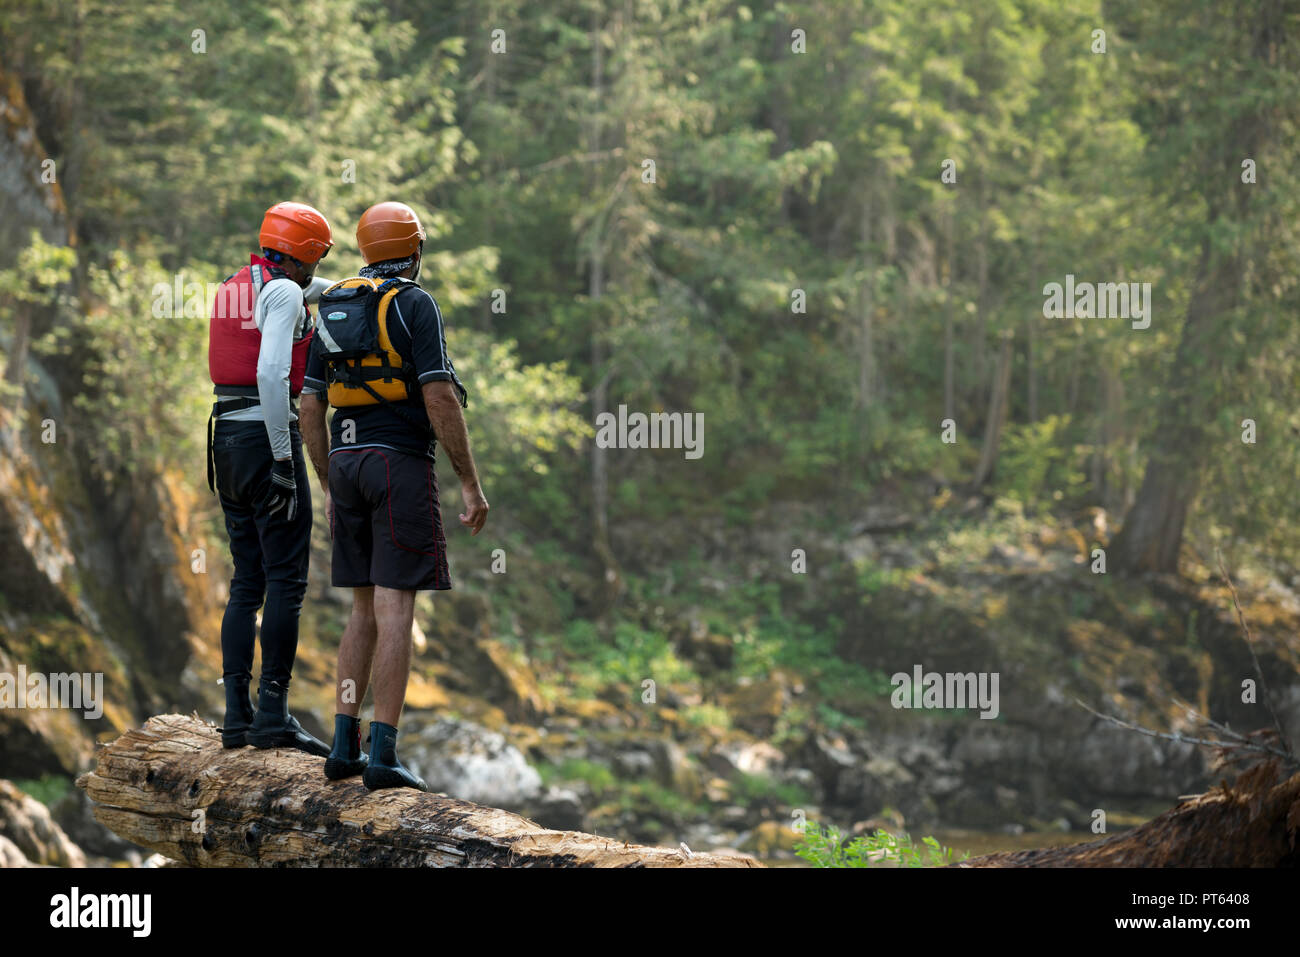 River runners standing on a log scouting a rapid on Idaho's Selway River. - Stock Image